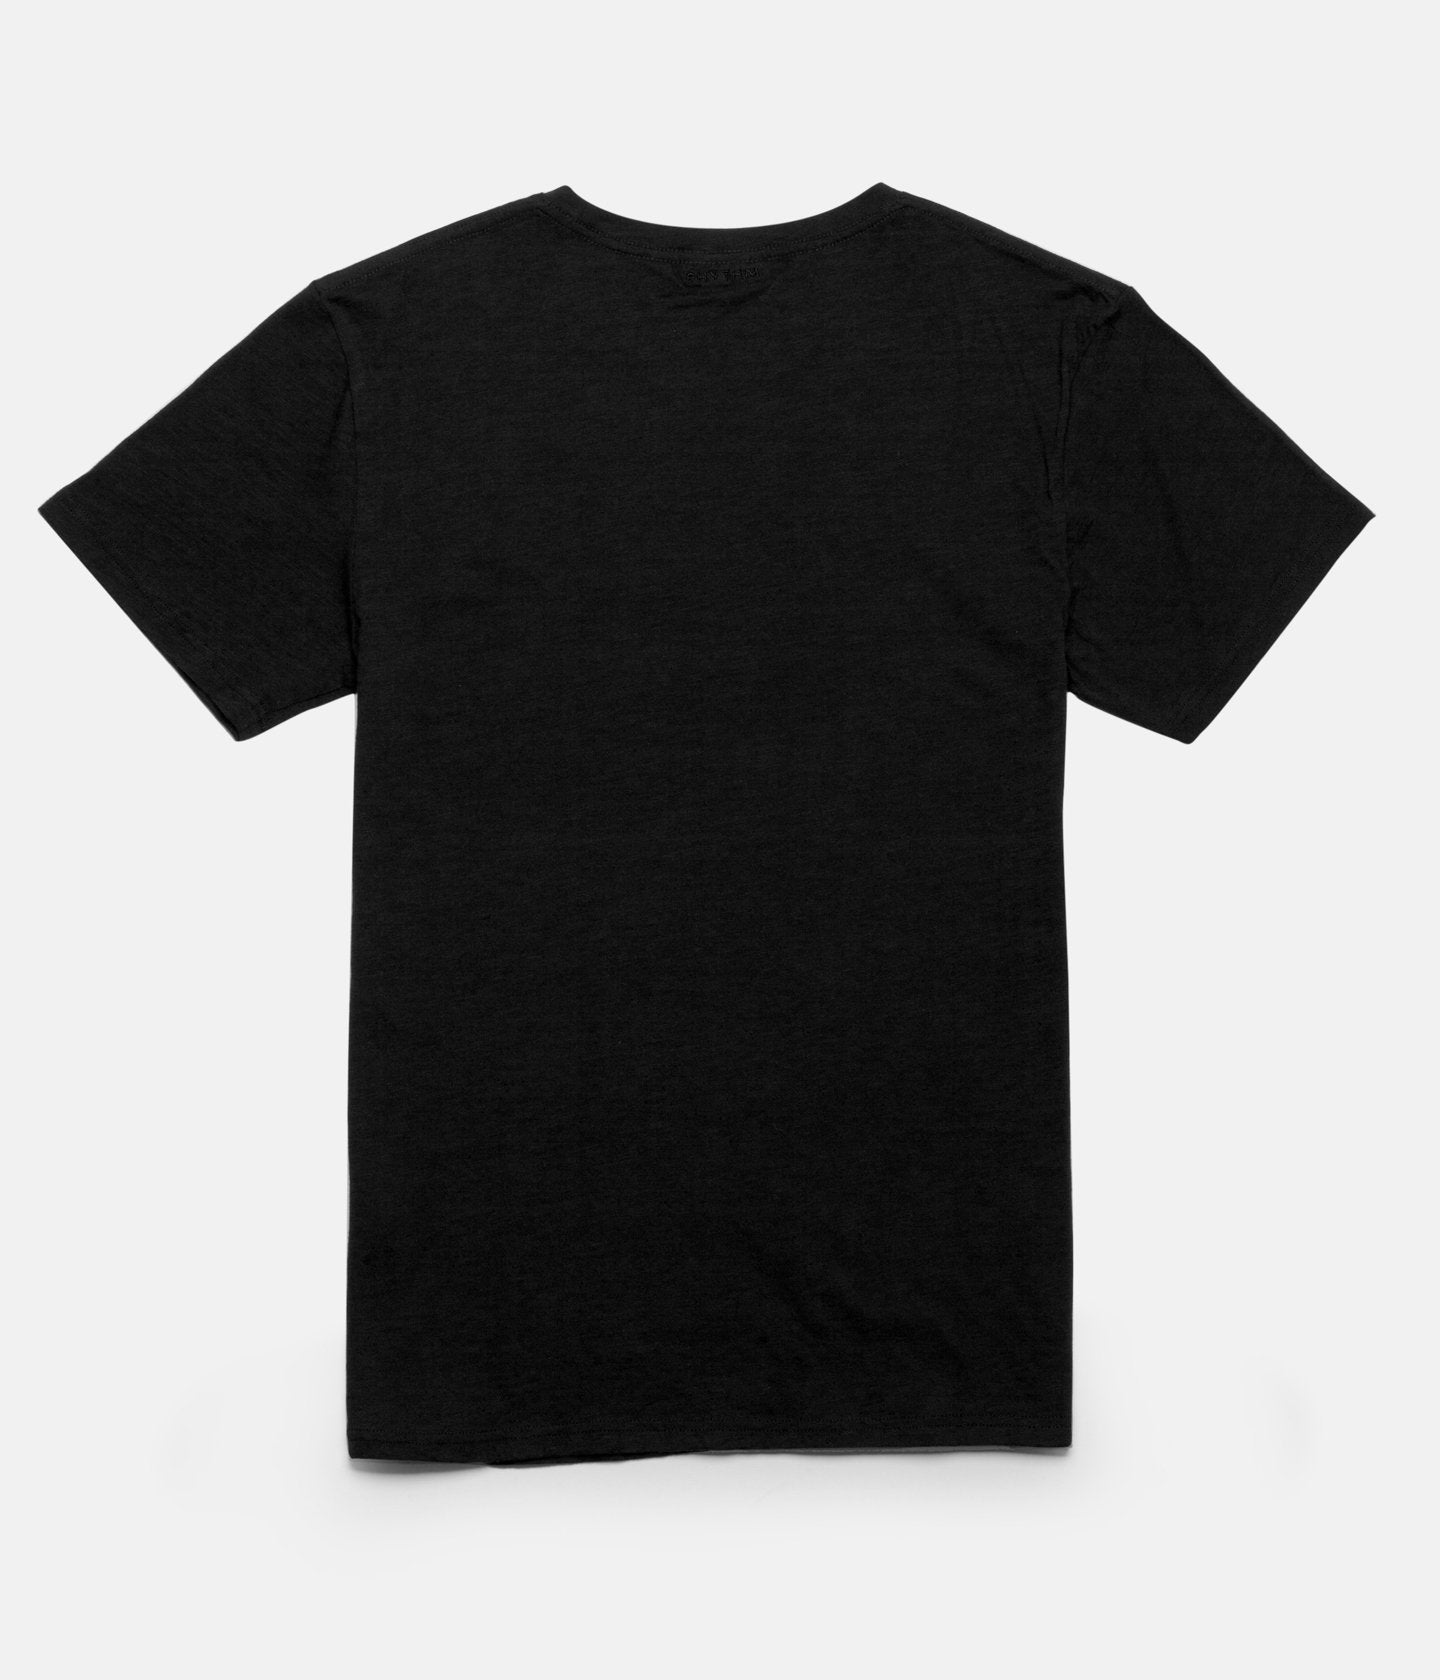 Rhythm Basic Slub Black Shirt (Size S)